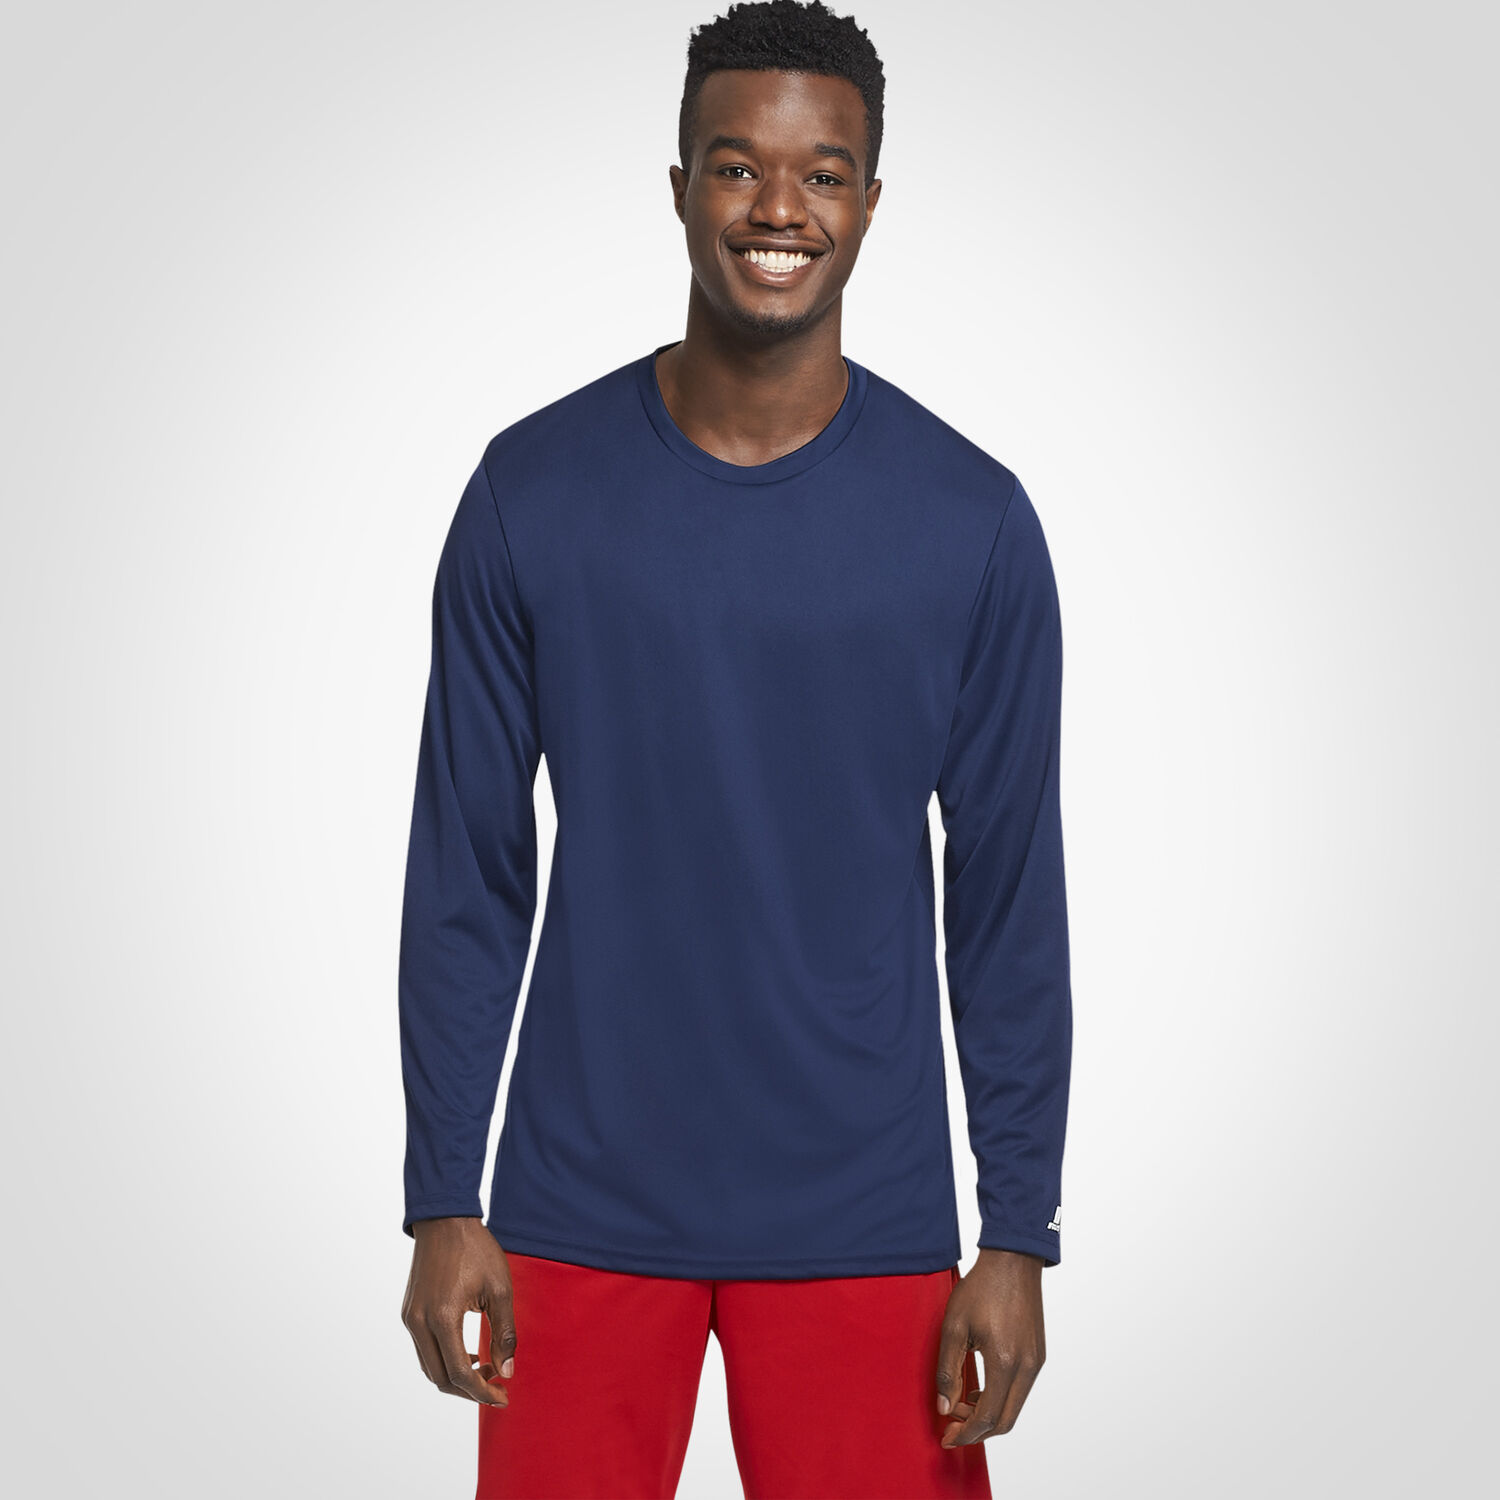 8e974ca4 Men's Dri-Power® Core Performance Long Sleeve Tee - Russell US ...